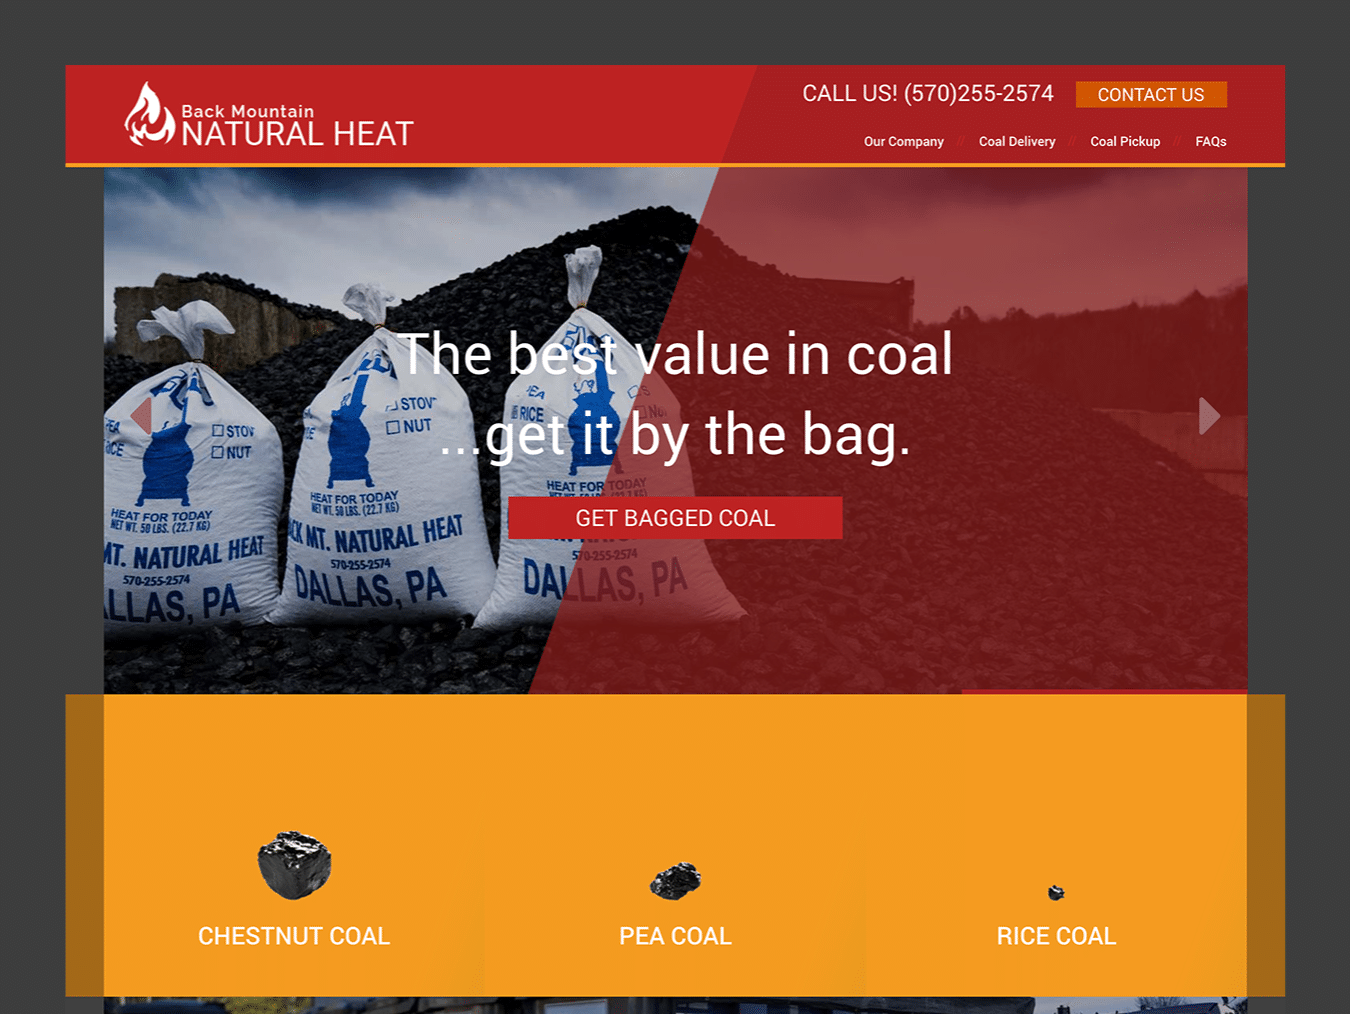 Service Company Web Design – Back Mountain Natural Heat (Thumbnail Design)